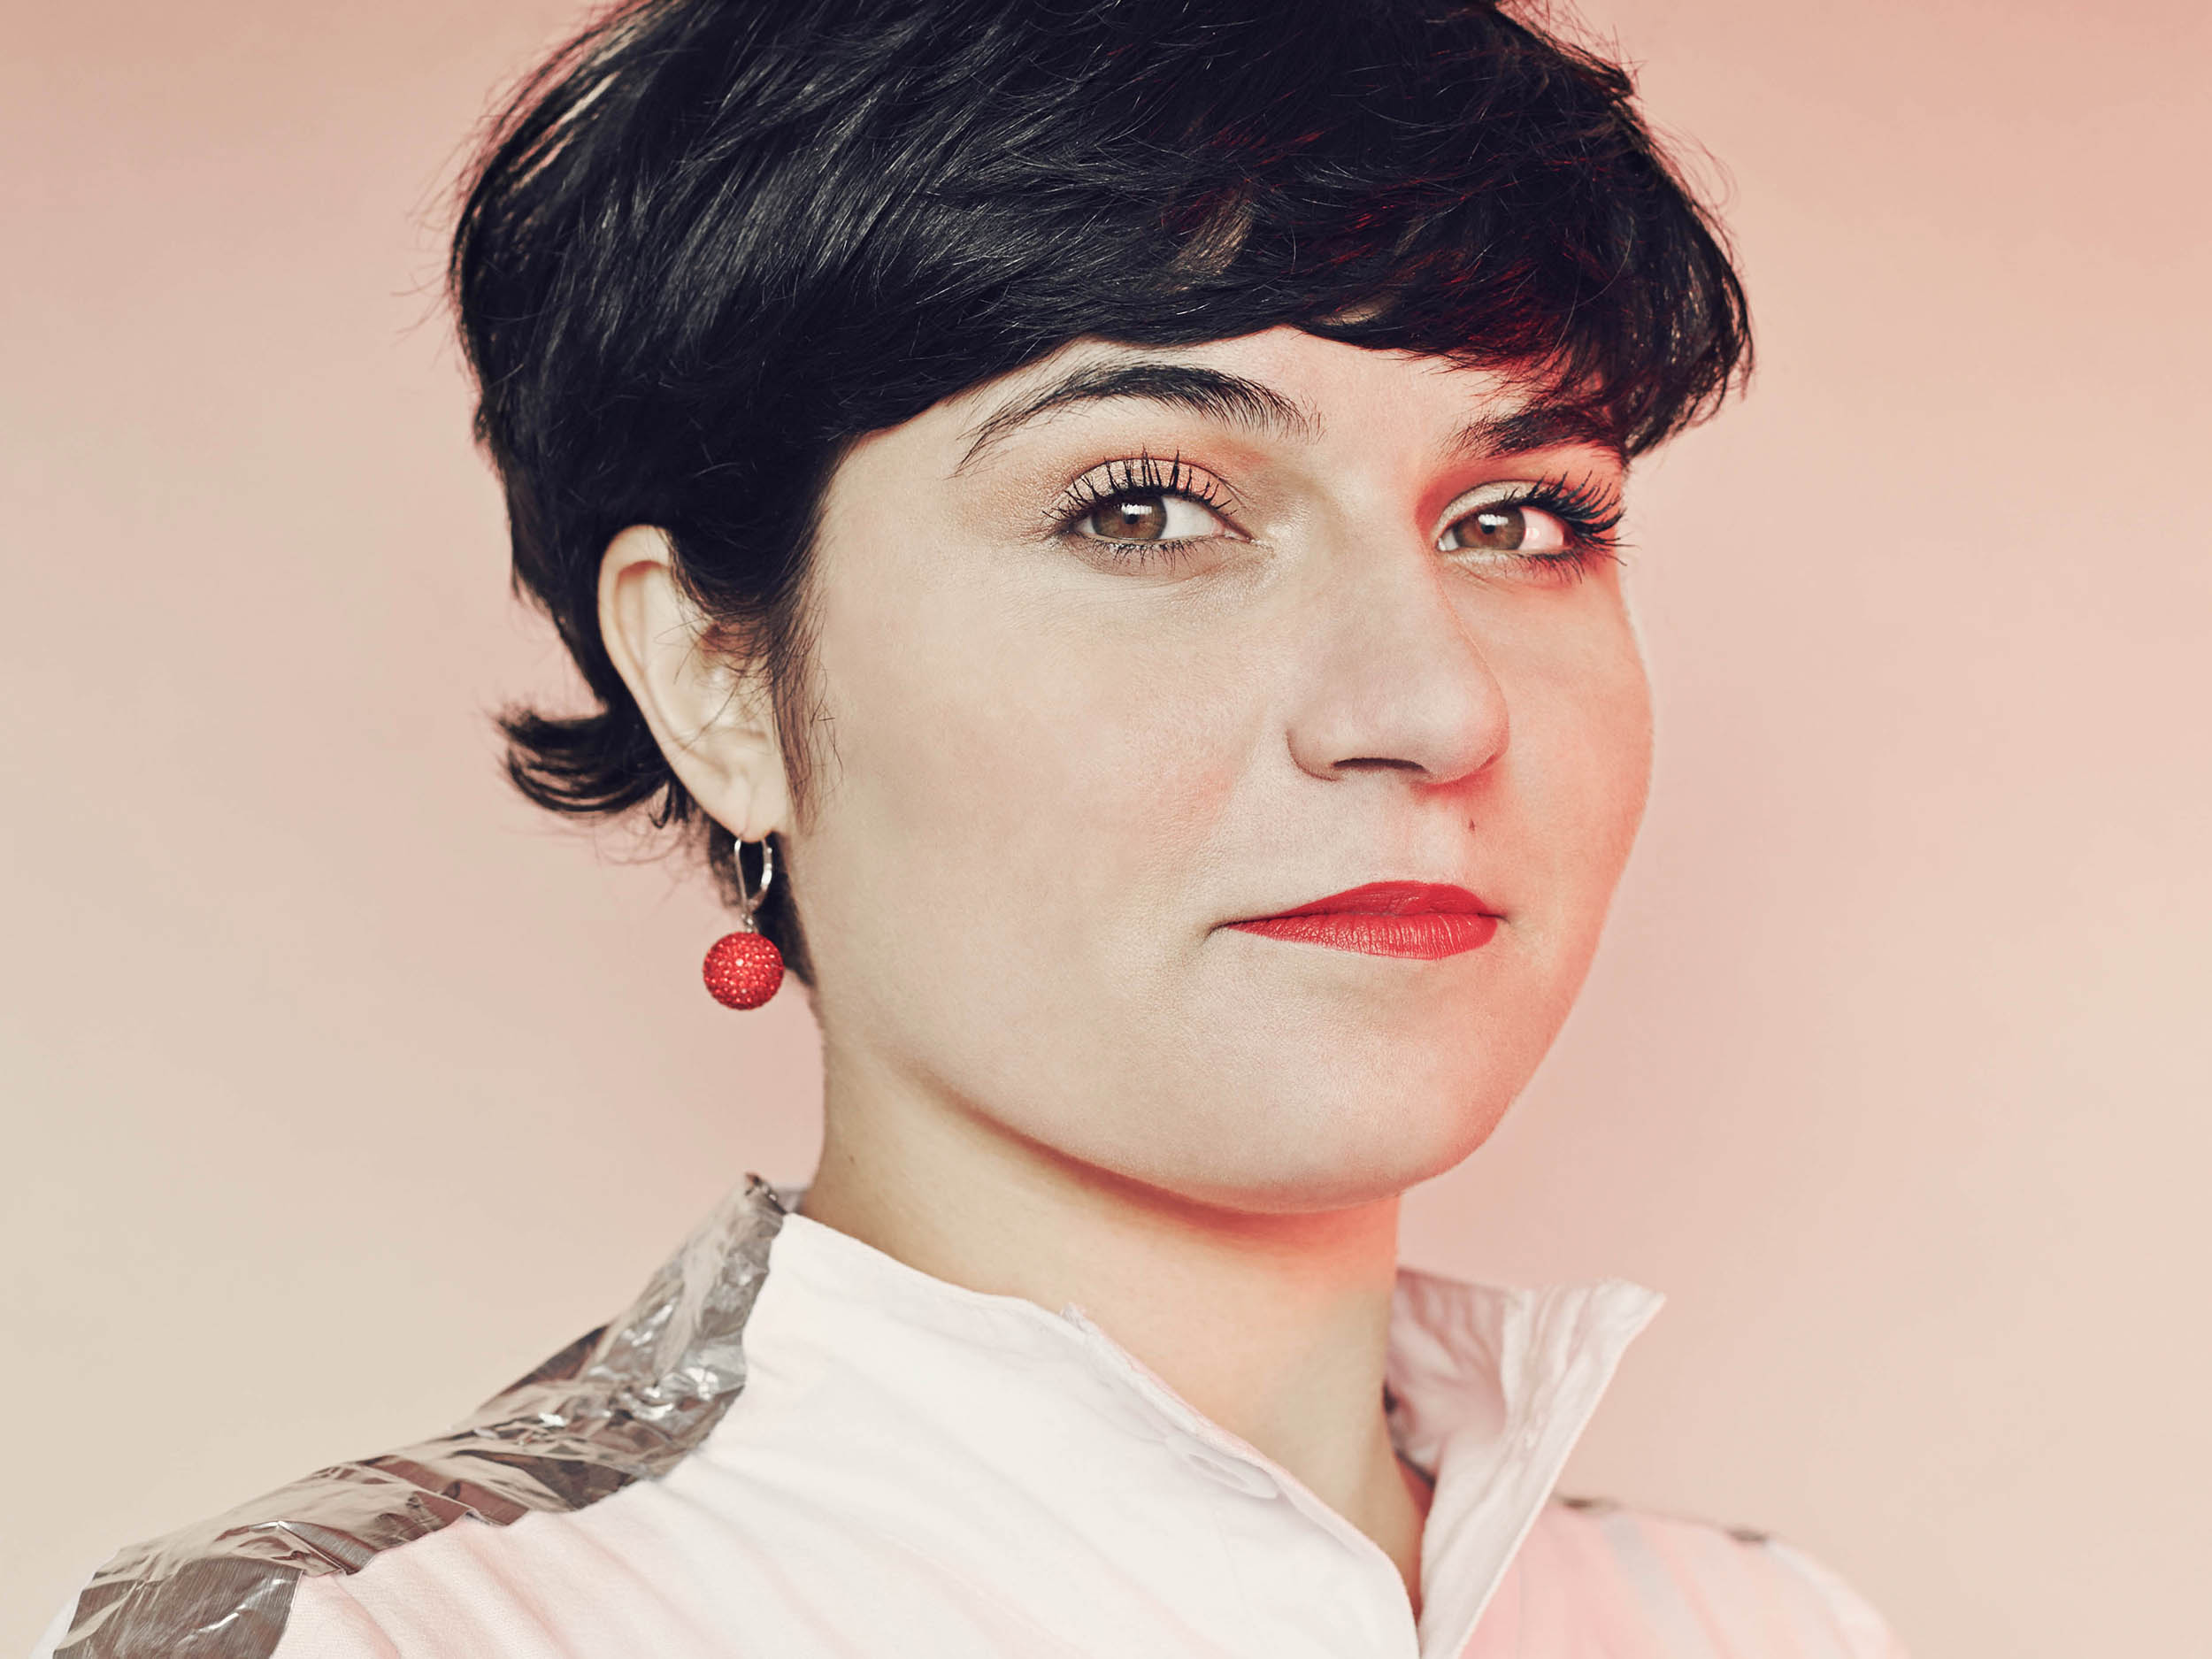 Time and space: Nelly Ben Hayoun harnesses science and technology to help us empathize